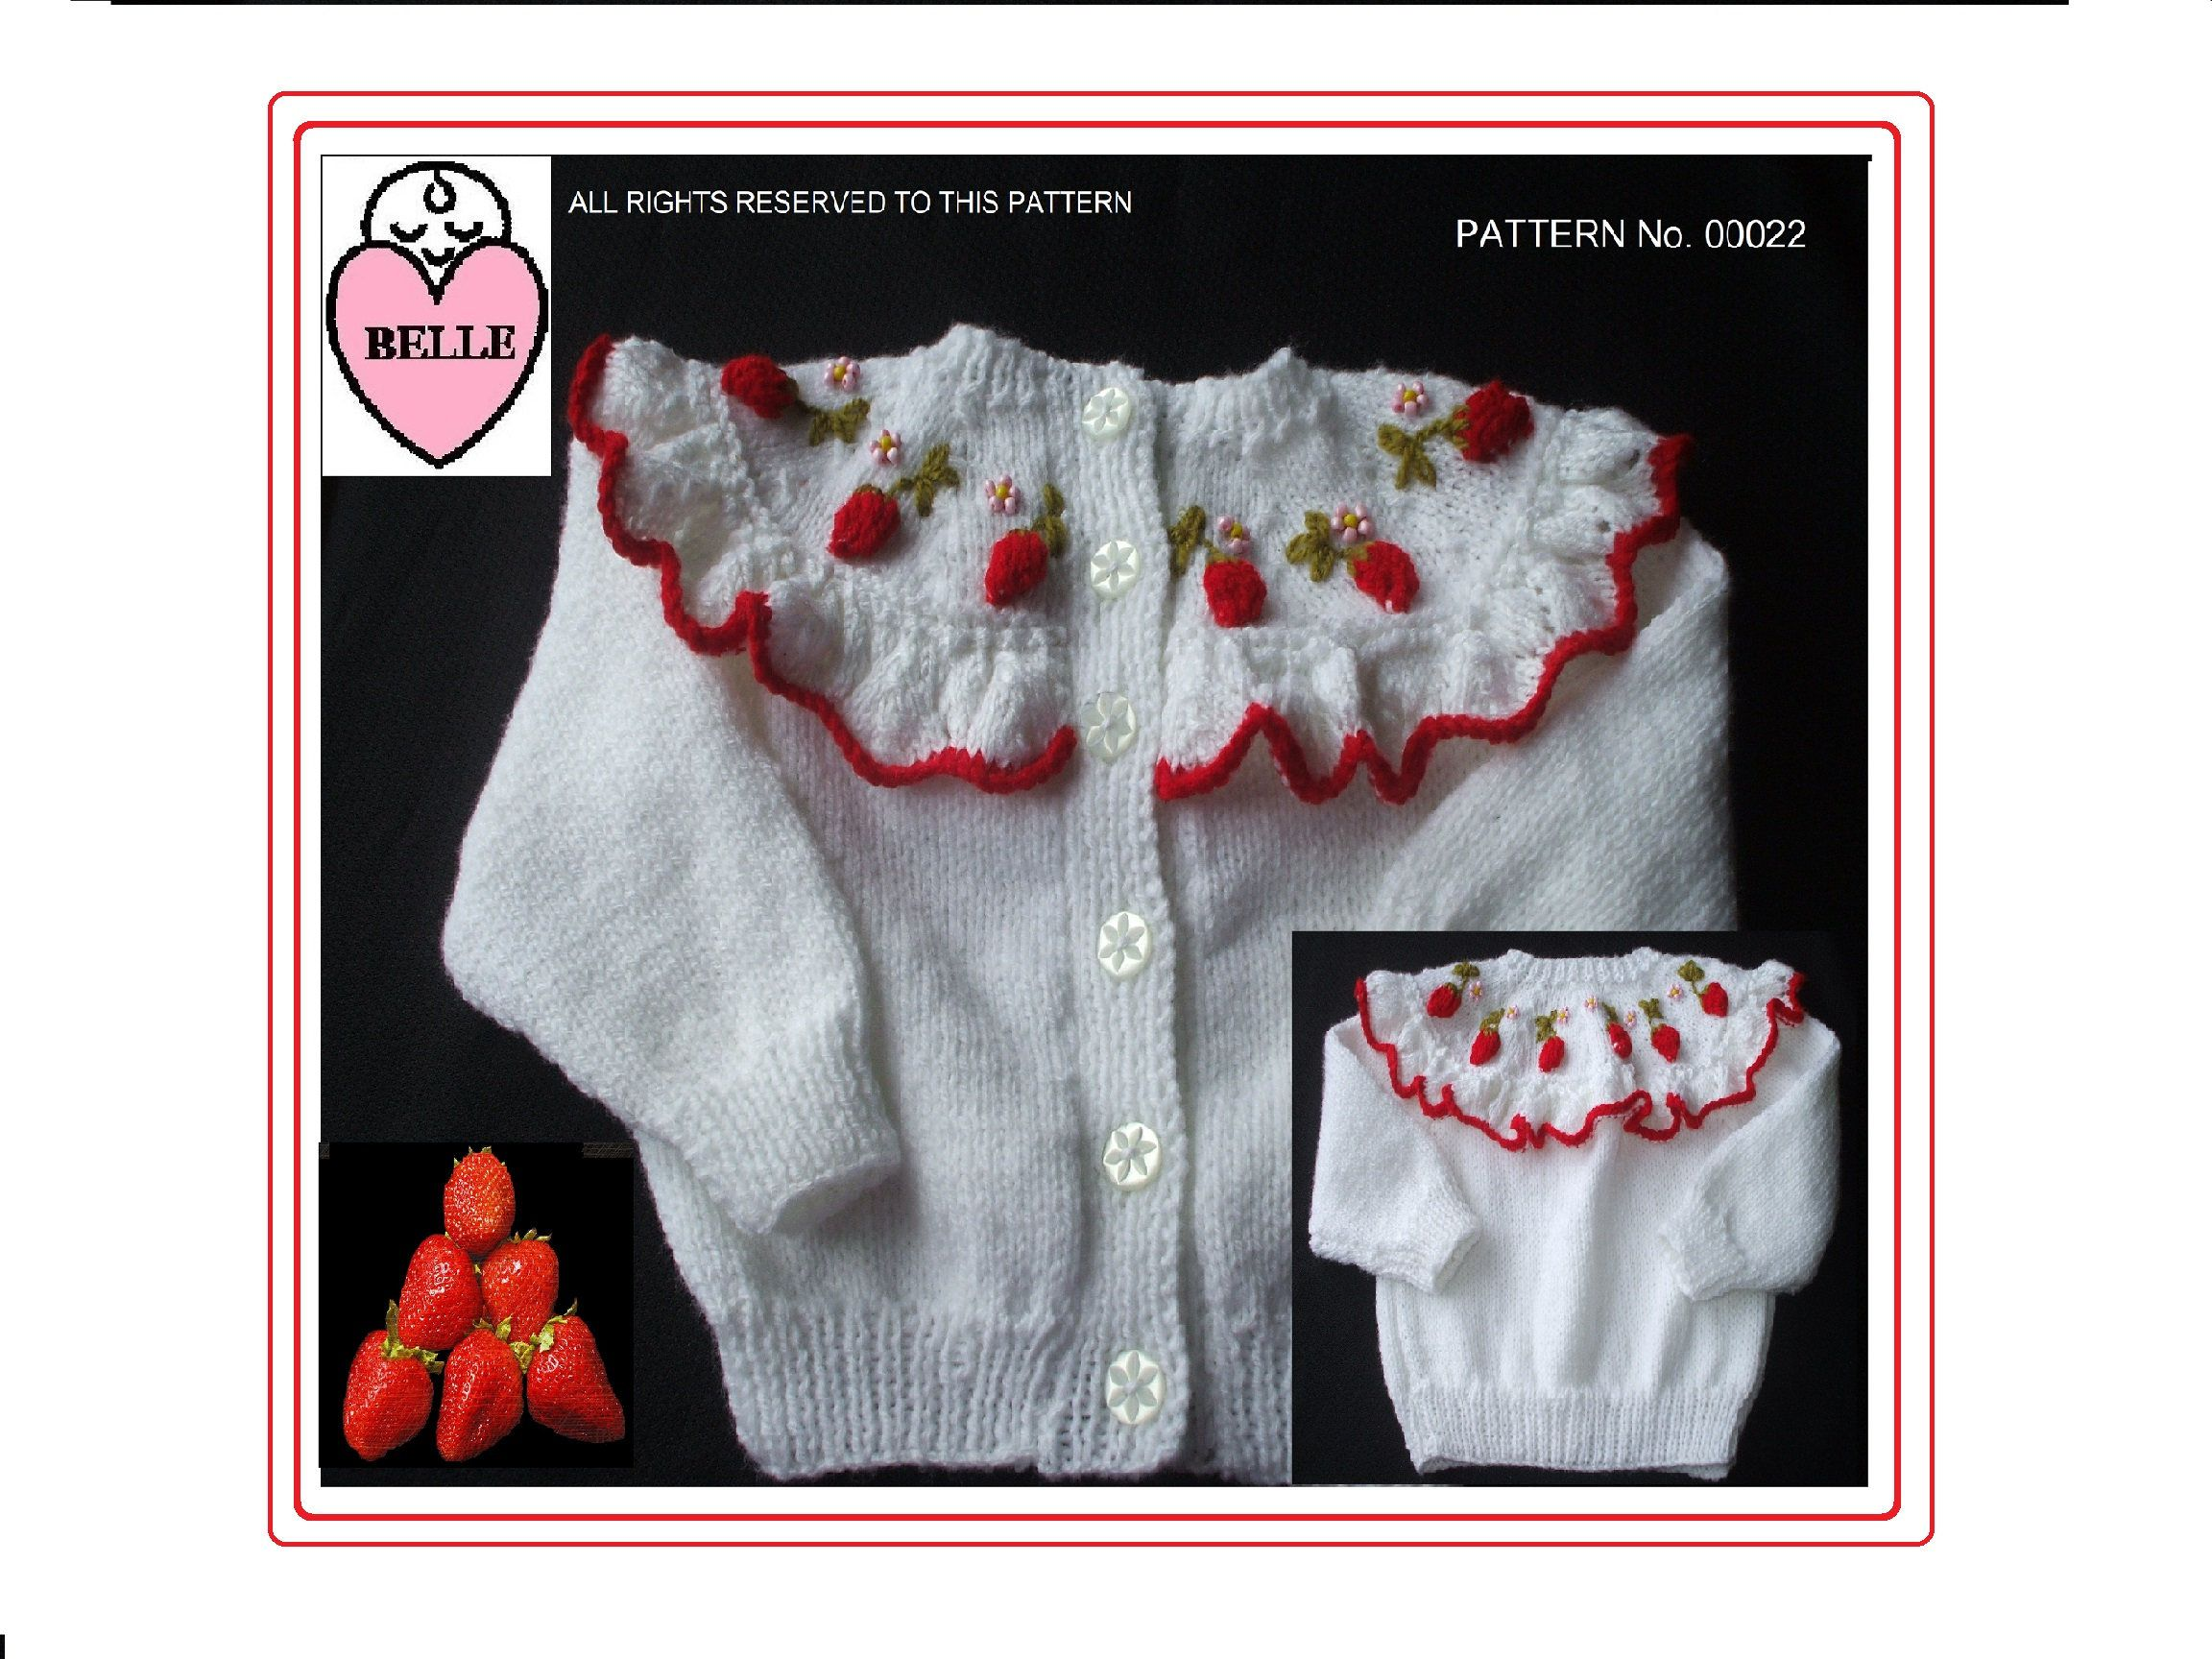 Delightful Cardigan and Sweater pattern for sizes 6-12 and 12-24 ...